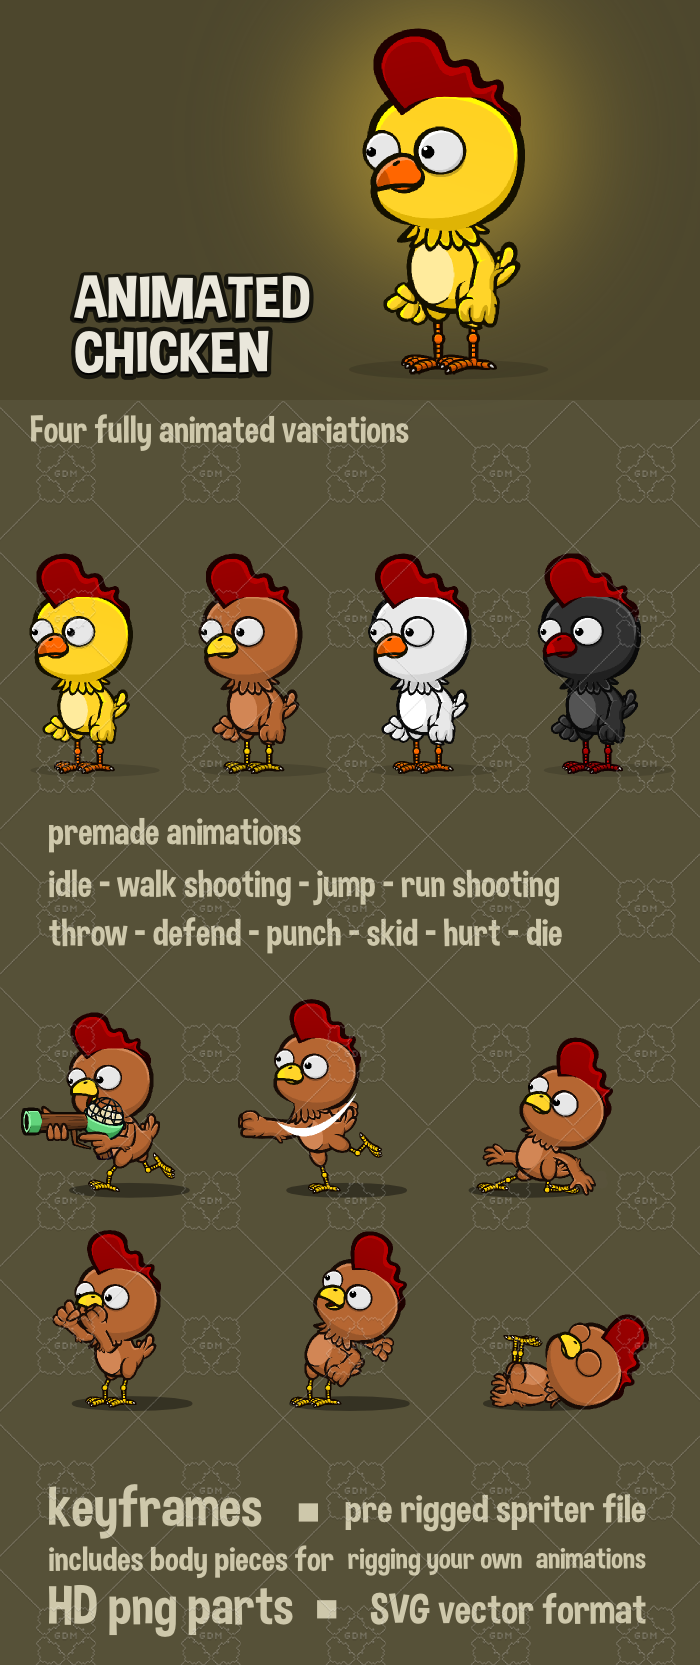 Animated chicken character